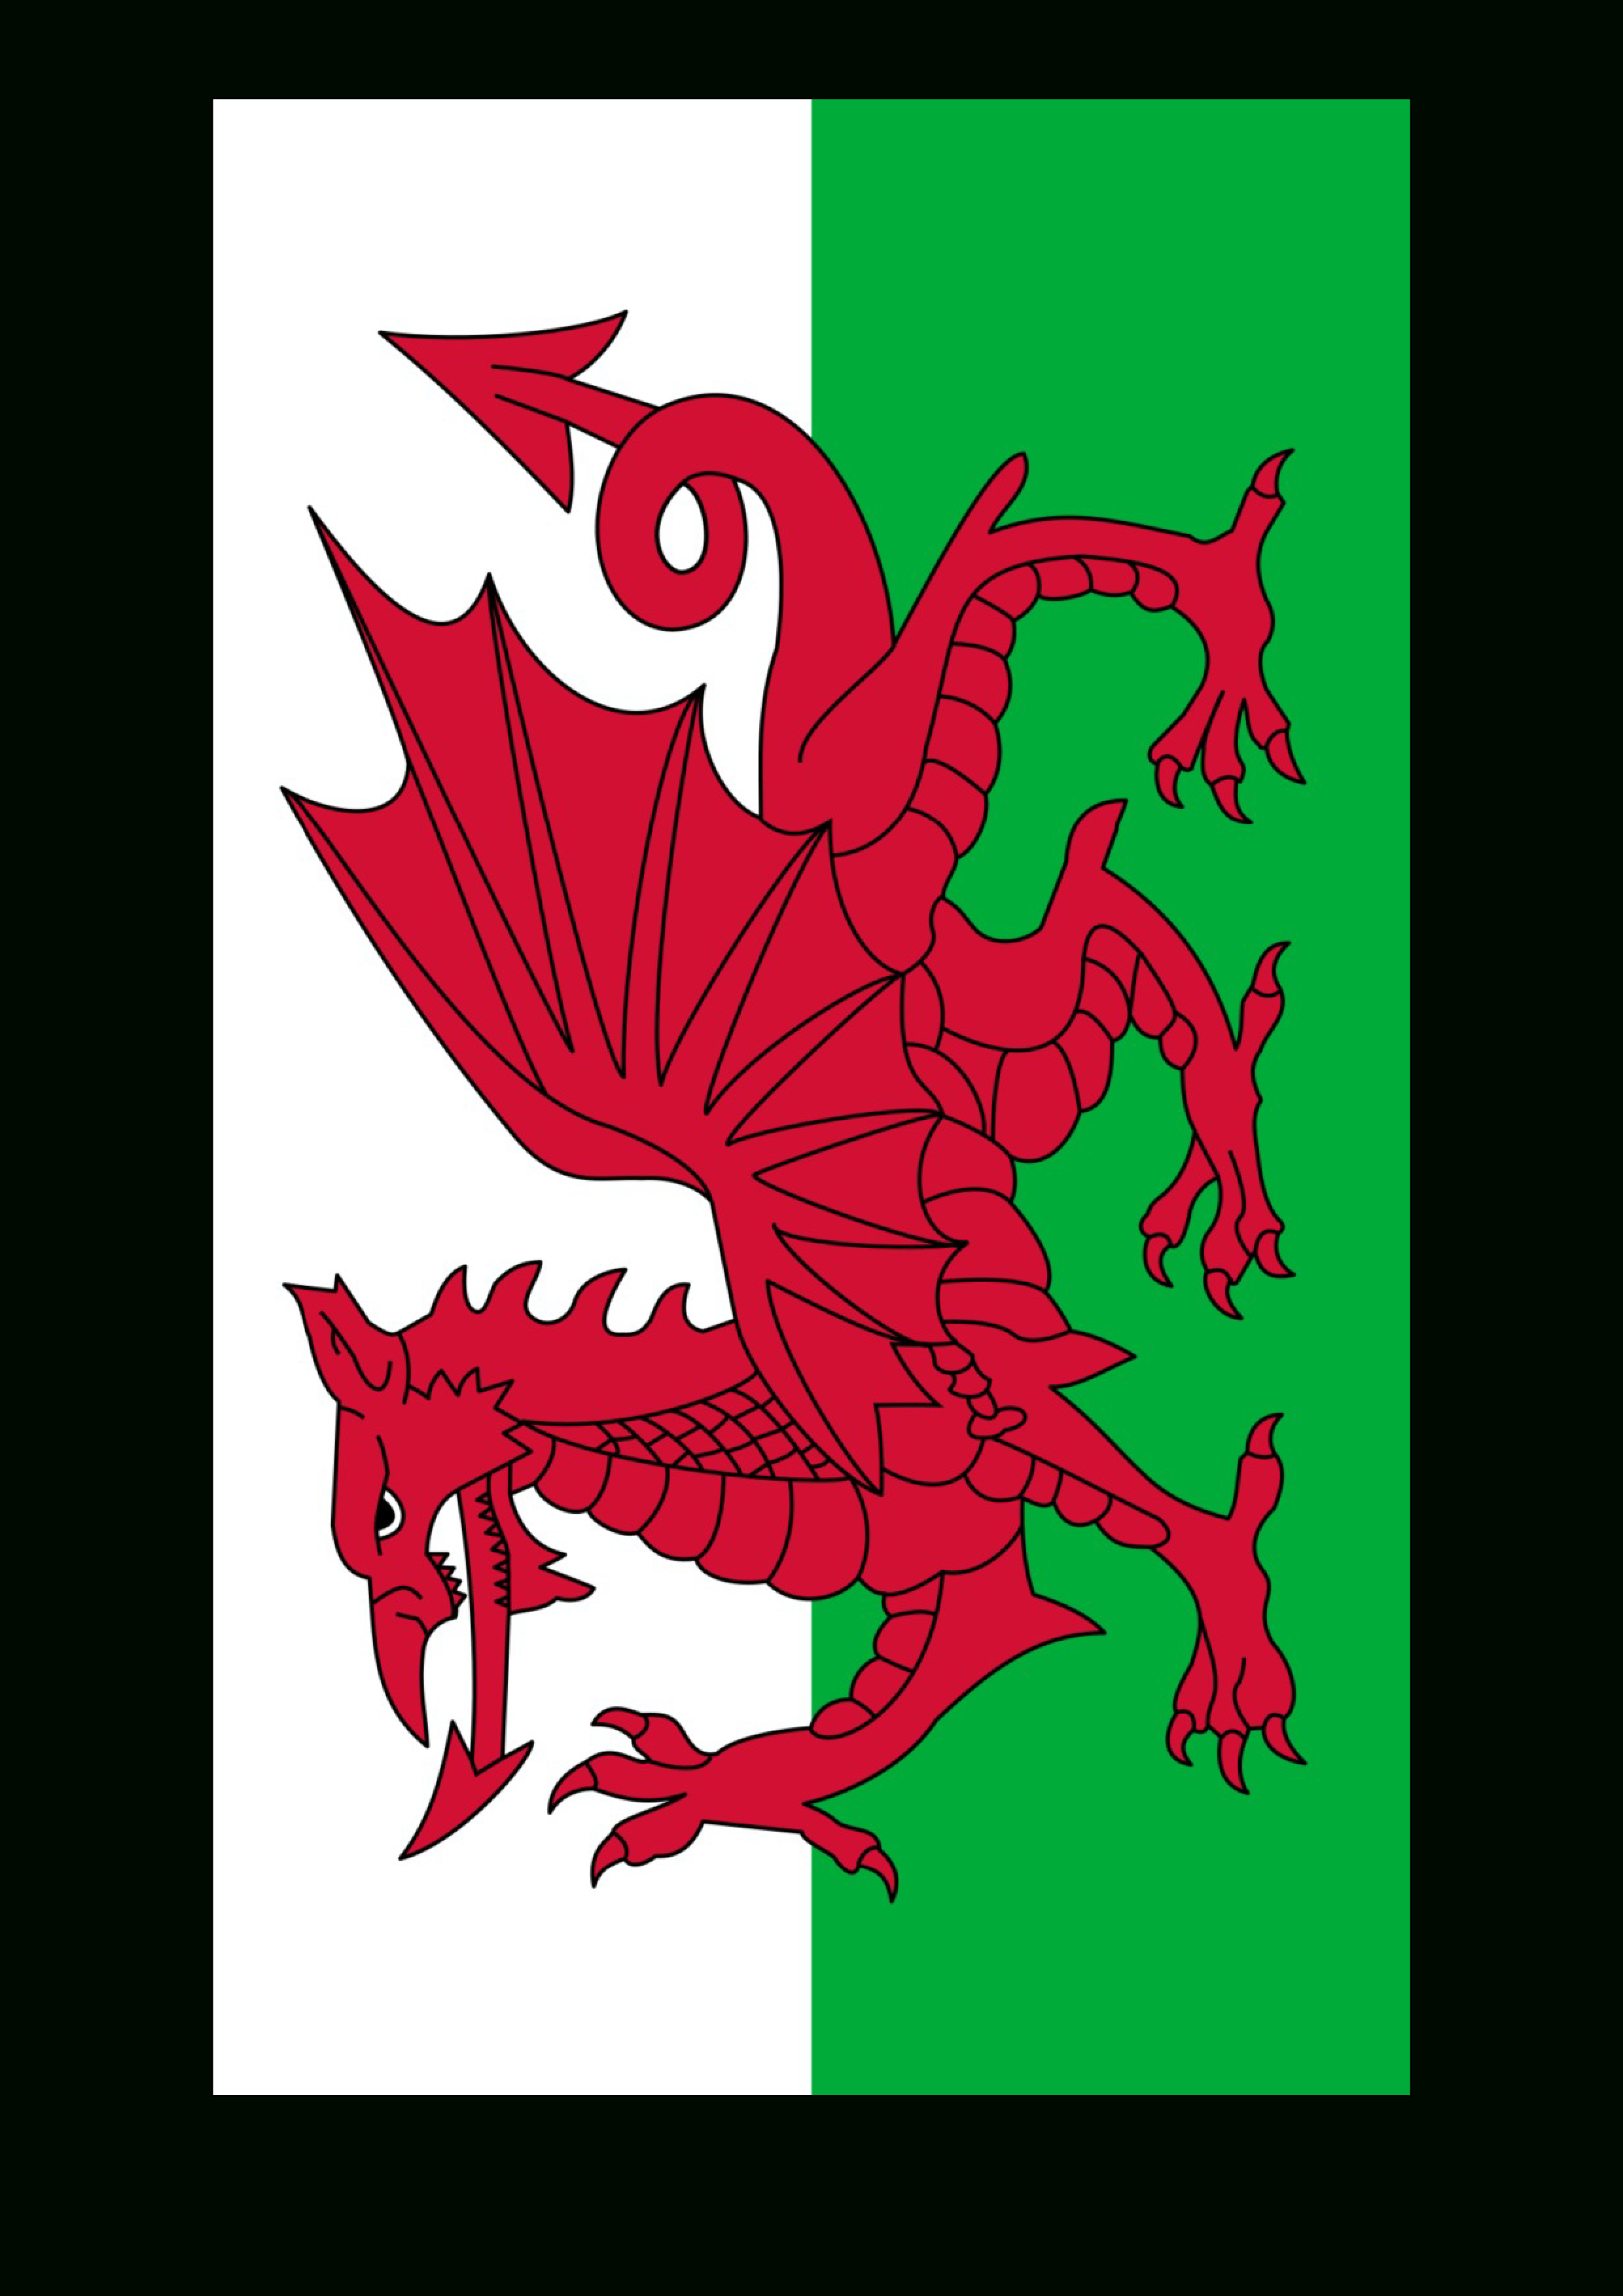 Wales Flag - Download This Free Printable Wales Template A4 Flag, A5 - Free Printable Scottish Flag